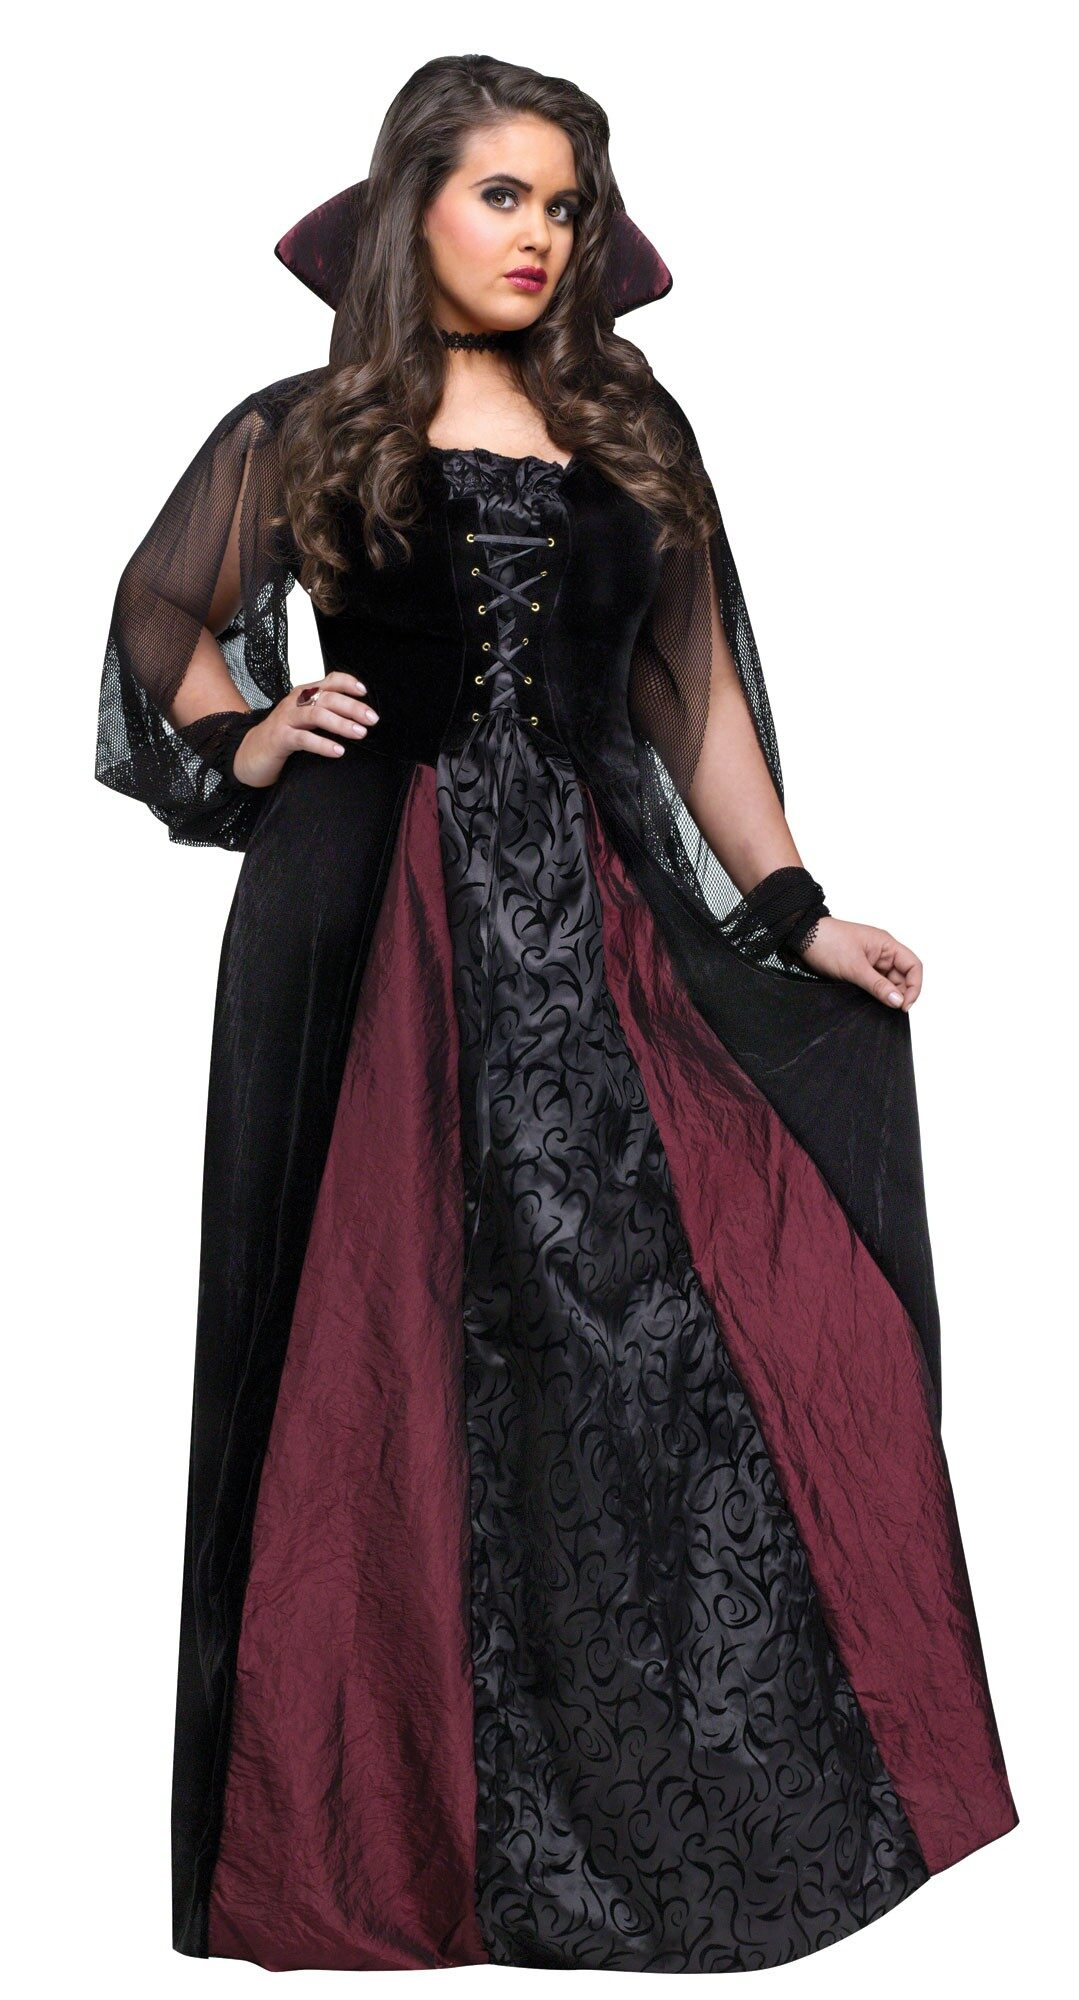 Gothic Vampire Maiden Plus Size Costume - Mr. Costumes